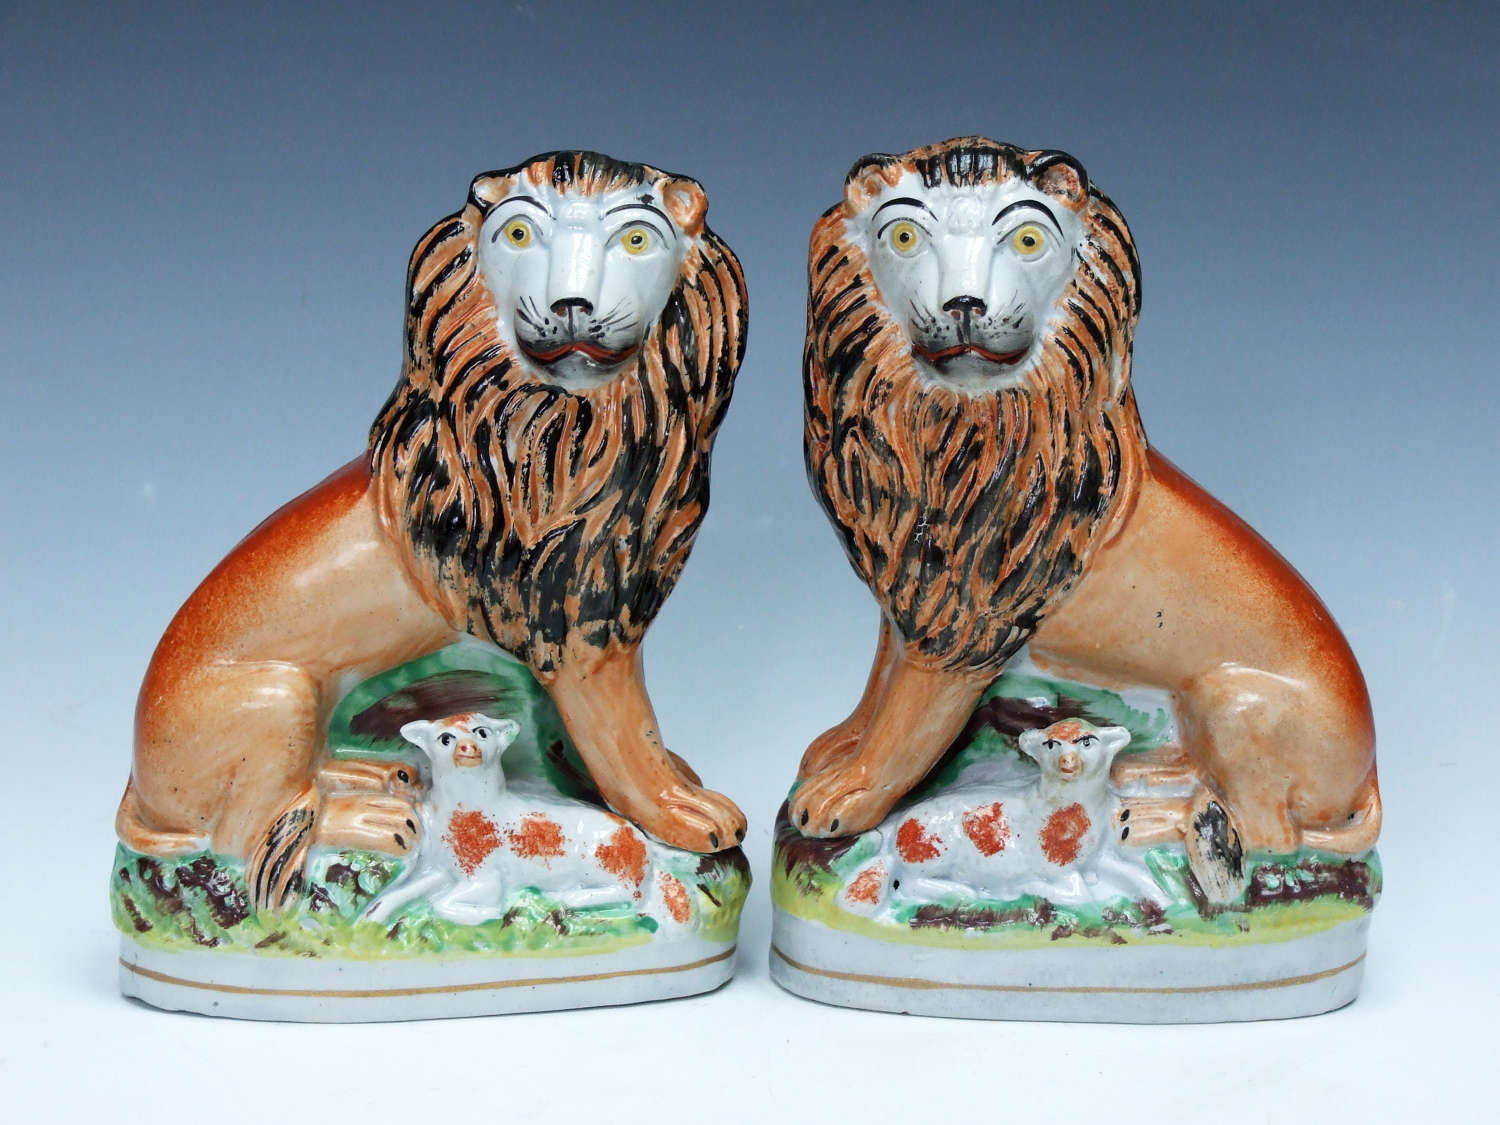 An extremely rare & charming pair of Staffordshire lion & lamb figures